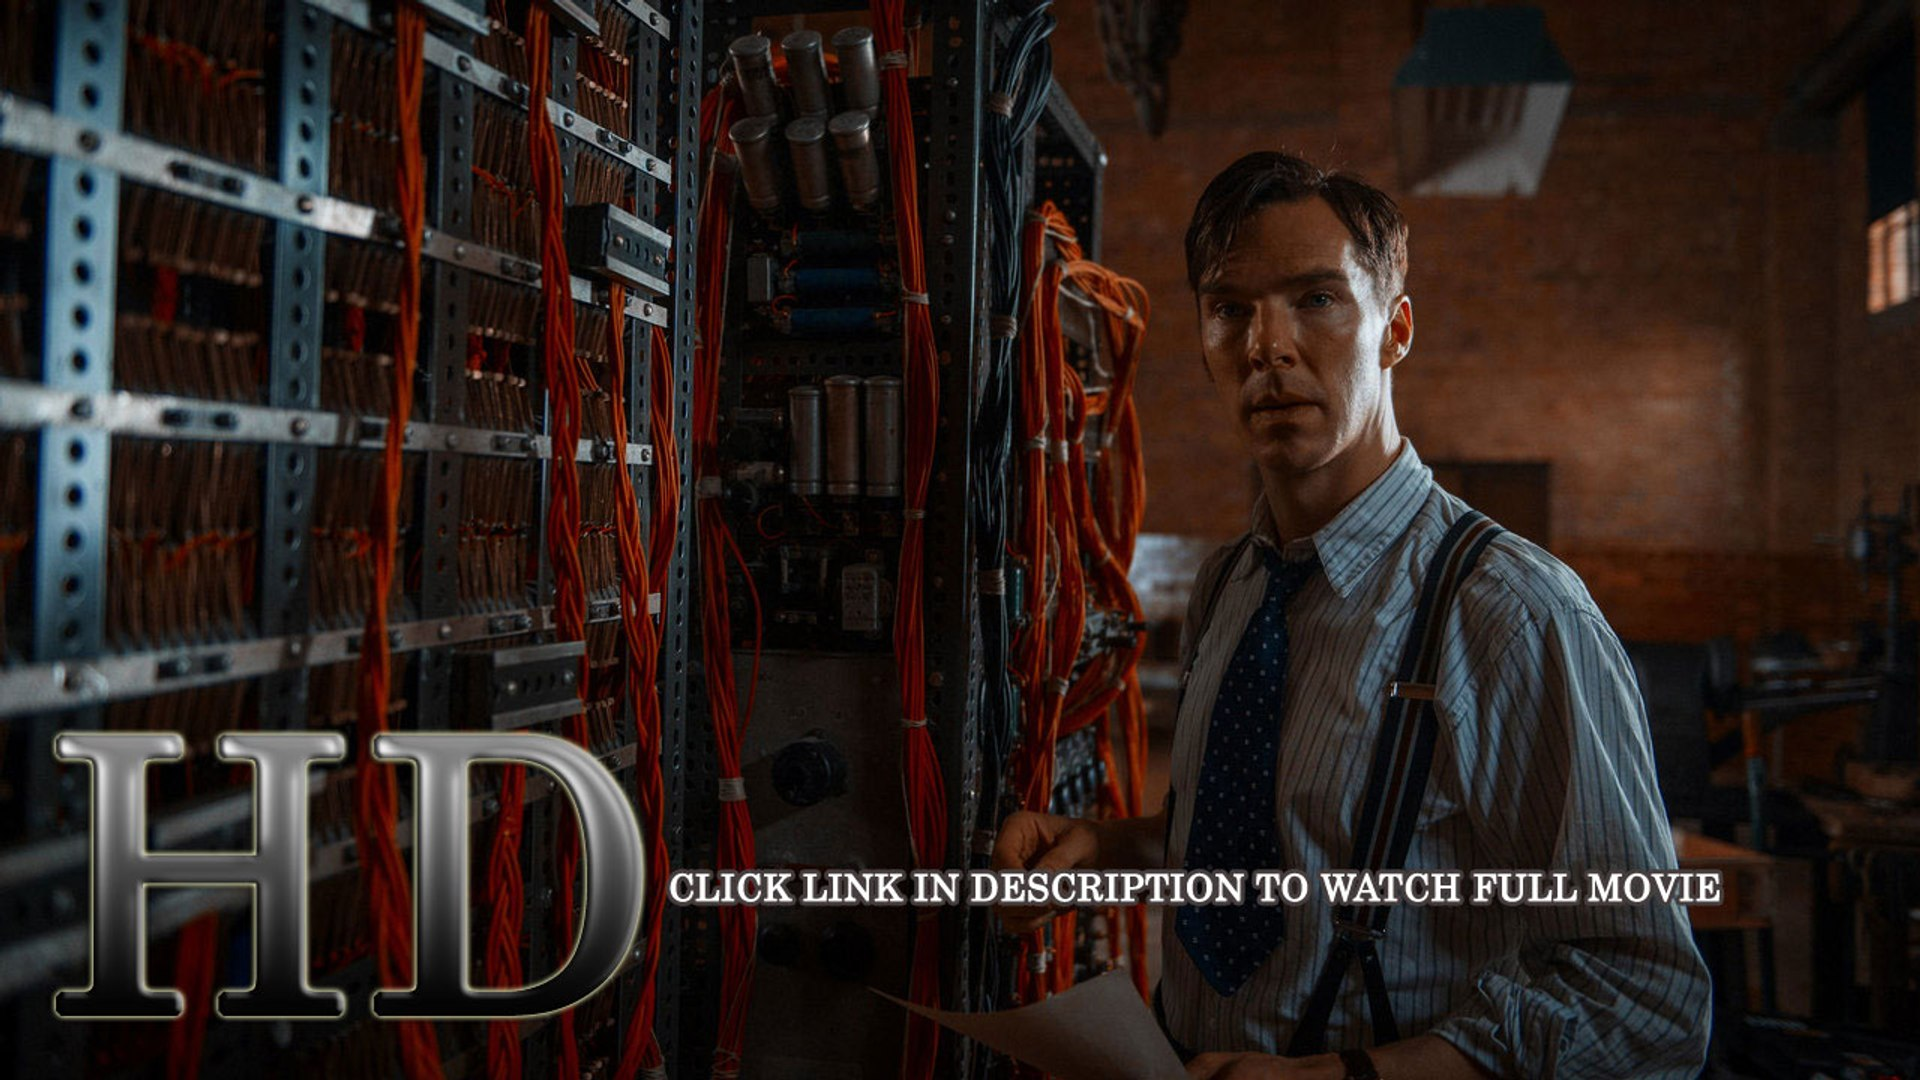 The Imitation Game Full Movie Streaming Online in HD-720p Video Quality,  The Imitation Game Full Mo